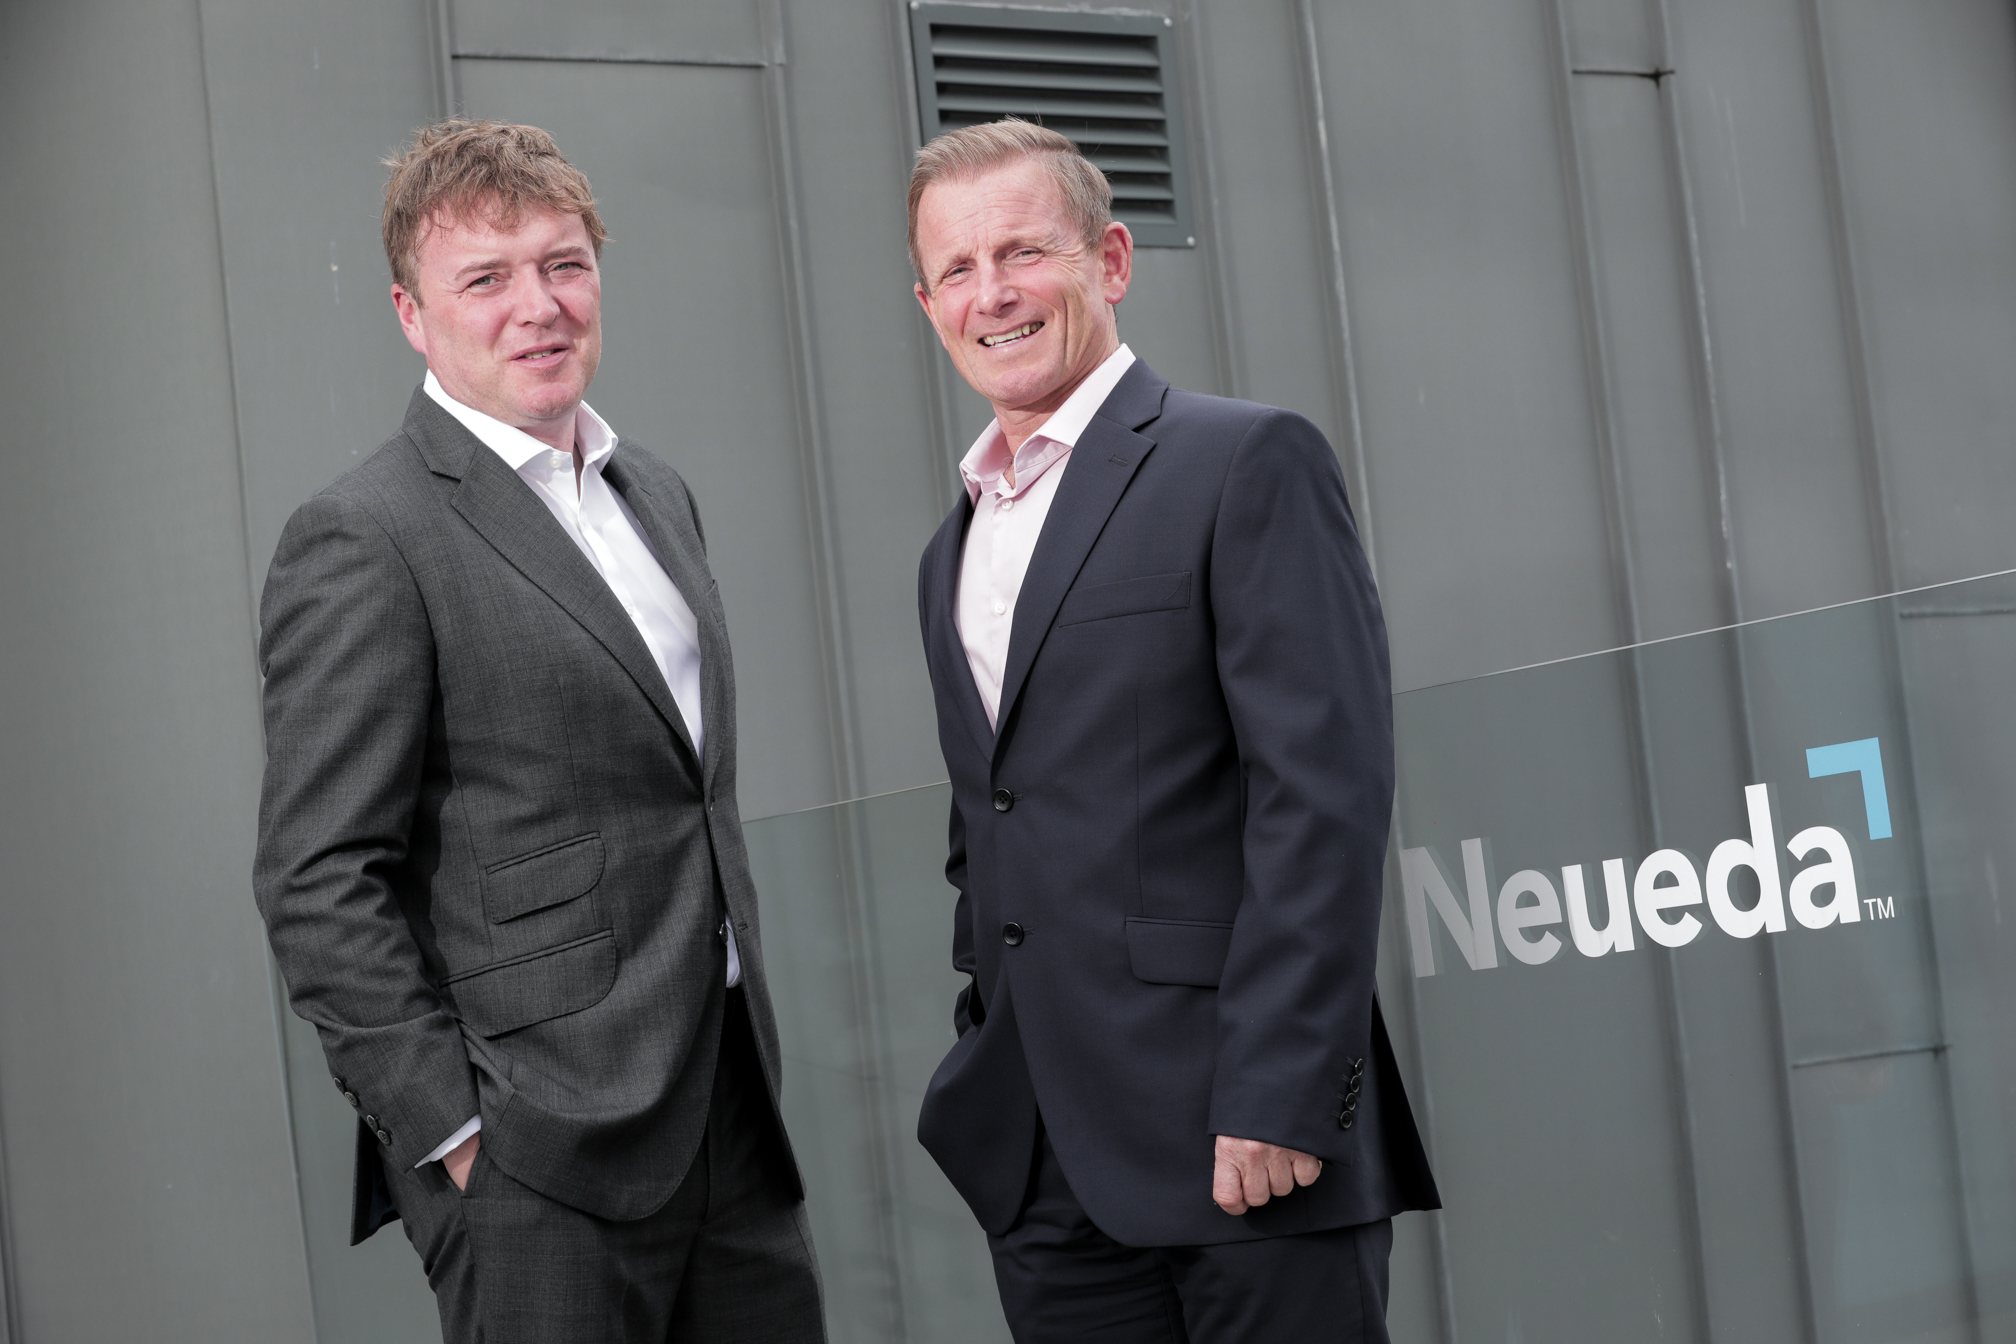 TECH FIRM NEUEDA EXPANDS PRESENCE IN SOUTHERN IRISH MARKET     Read More